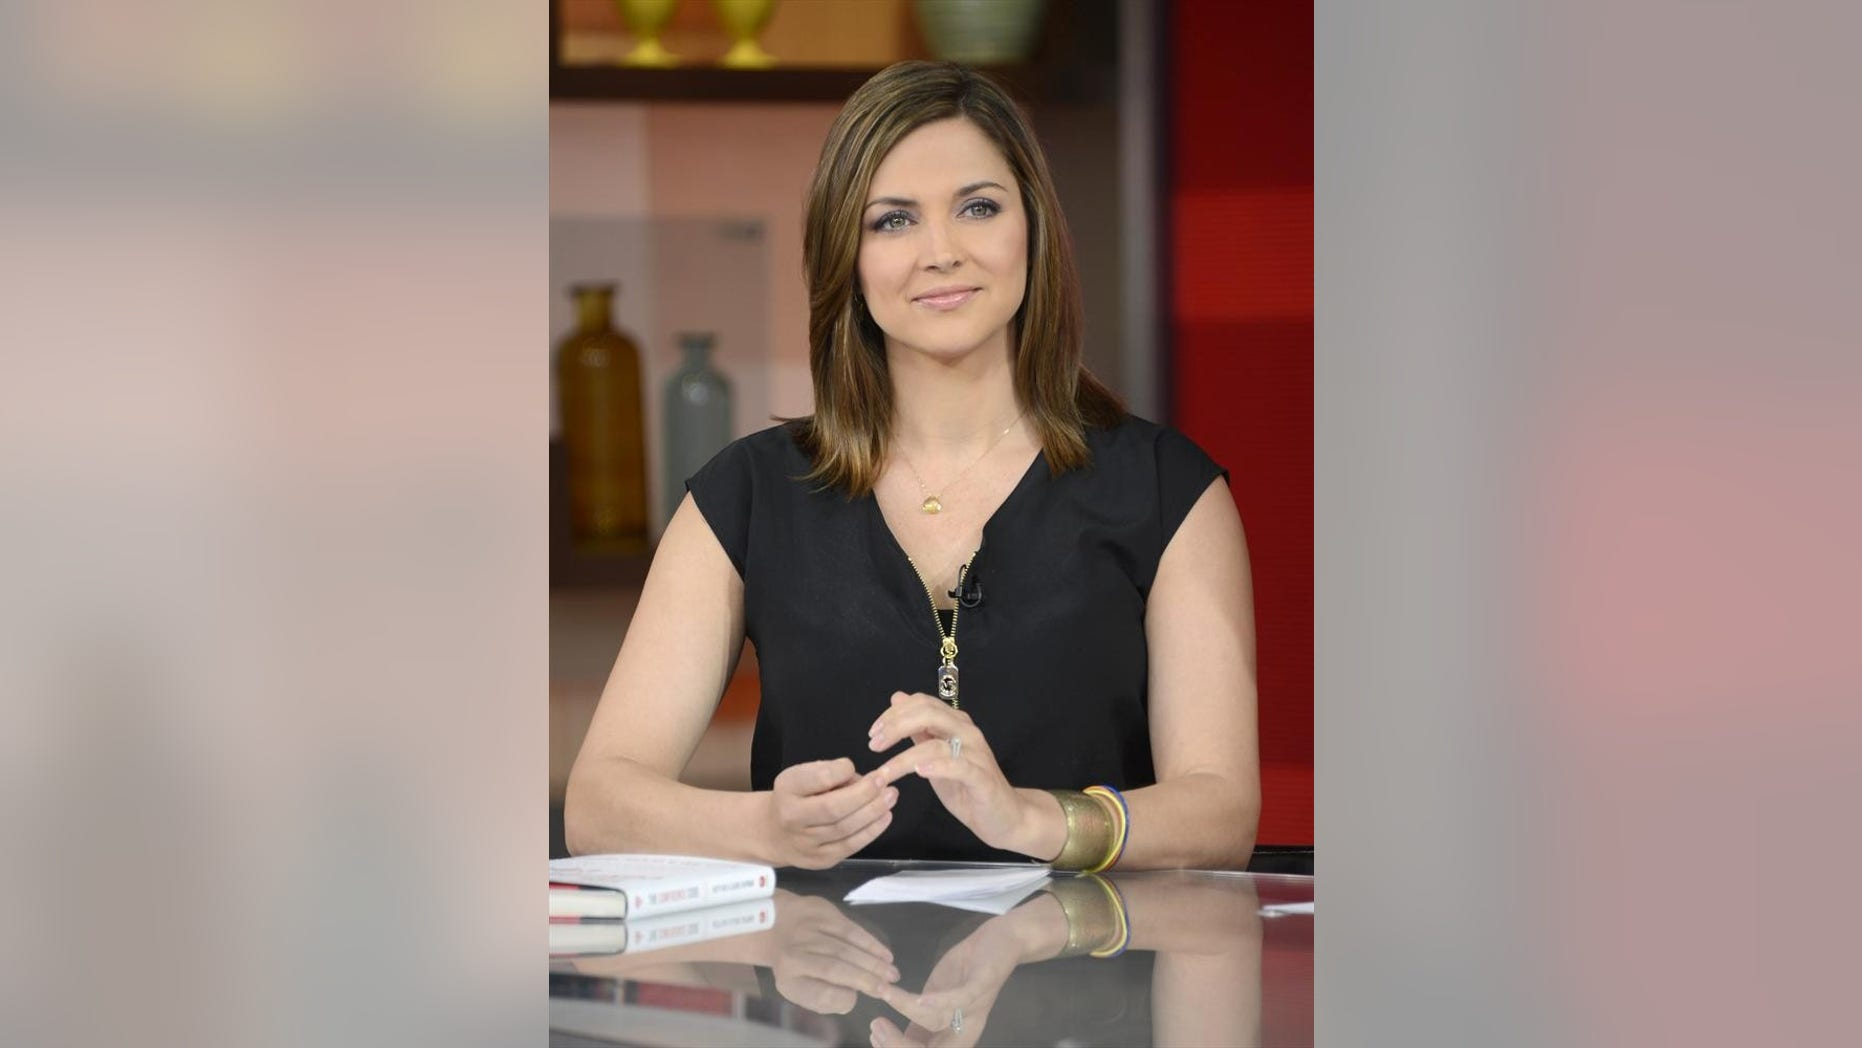 Paula Faris replaces Bianna Golodryga as weekend 'Good